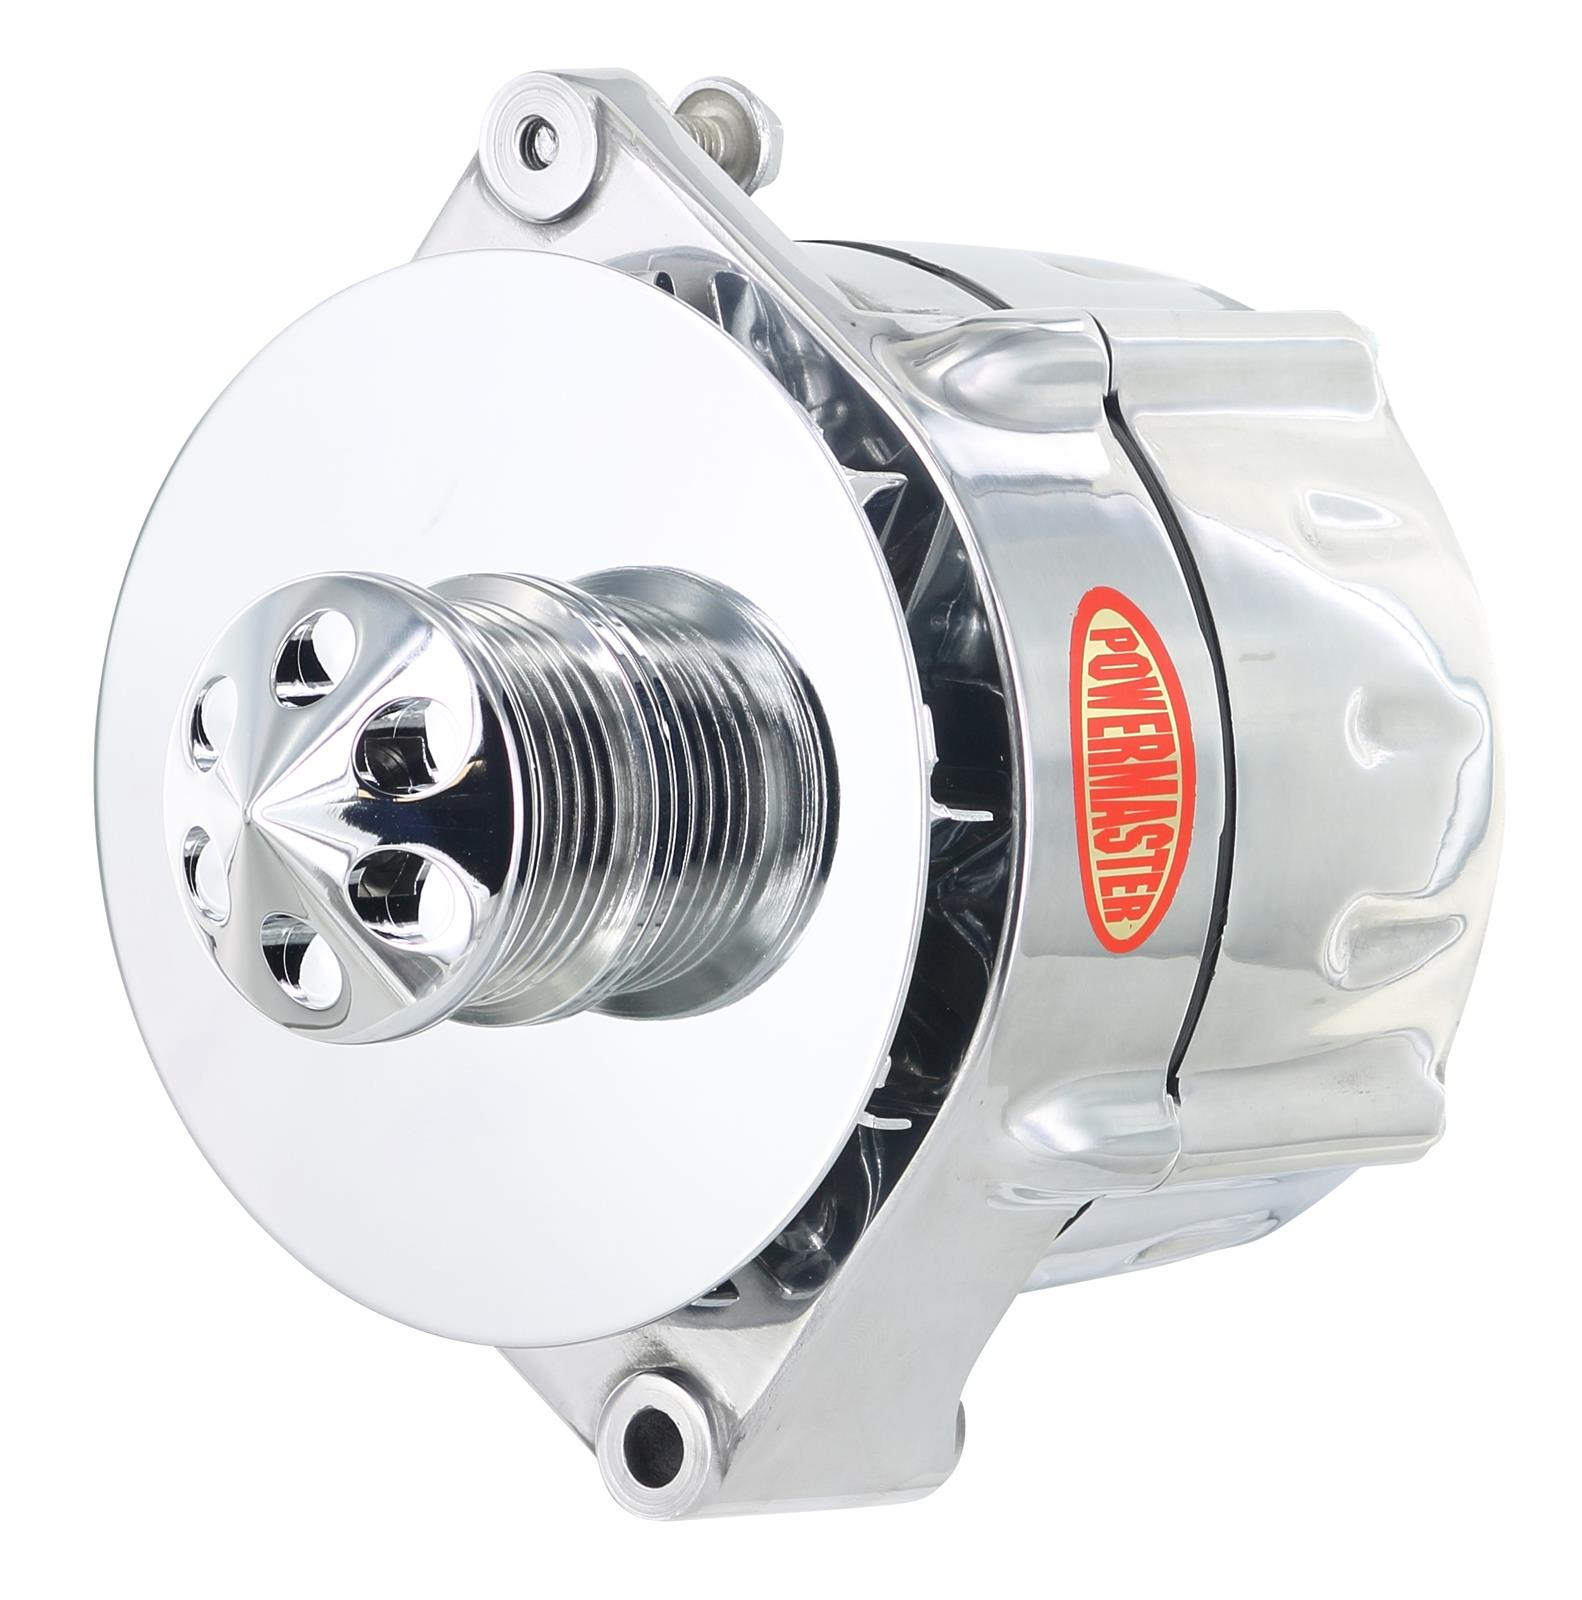 hight resolution of 1985 jeep cj7 powermaster smooth look alternators 67296 free shipping on orders over 99 at summit racing